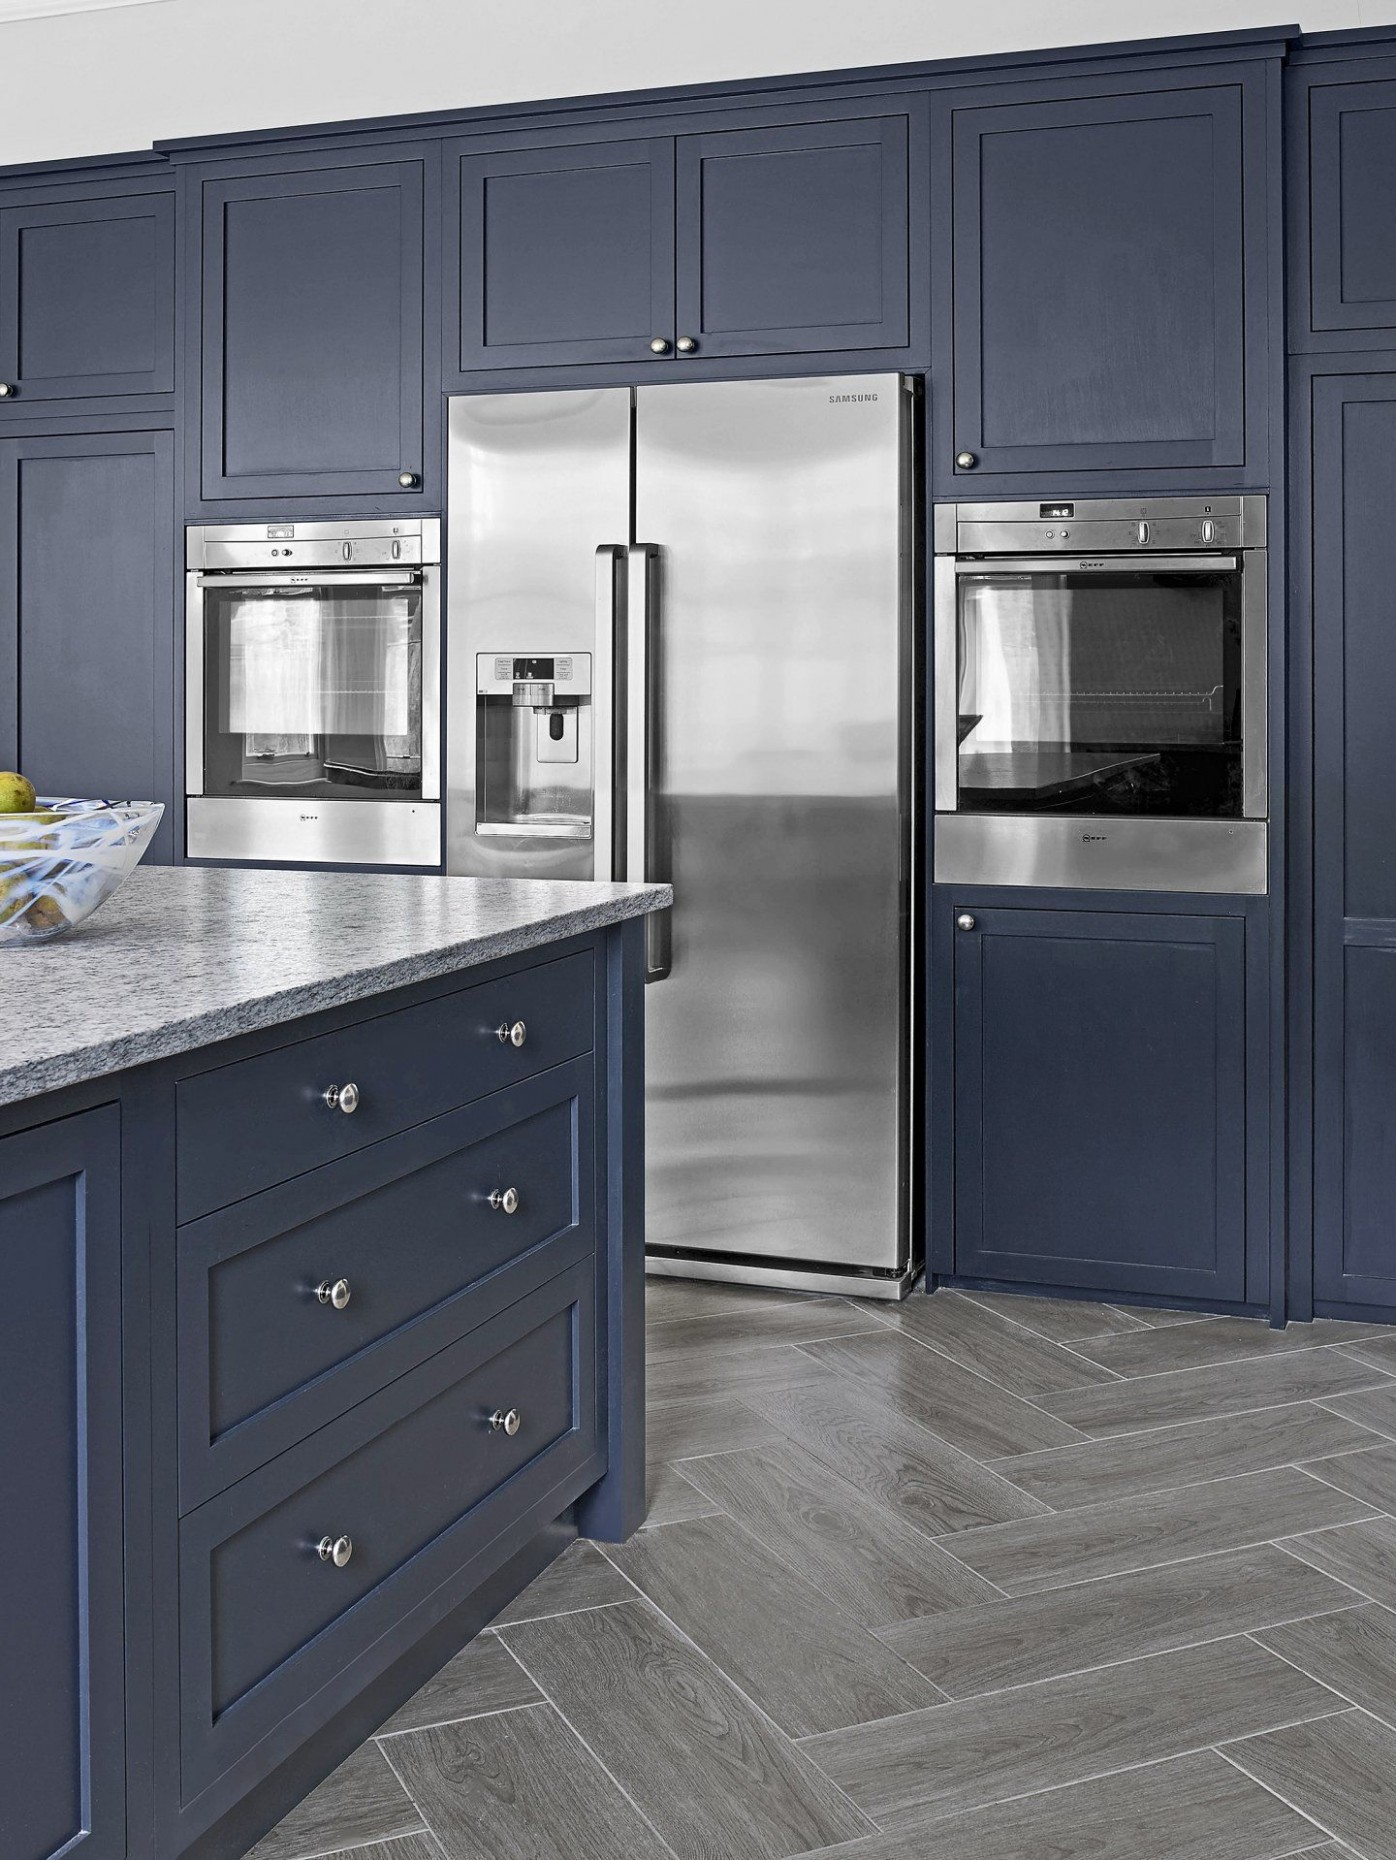 Read This Before You Paint Your Kitchen Cabinets  Kitchen cabinet  - How To Finish Kitchen Cabinets